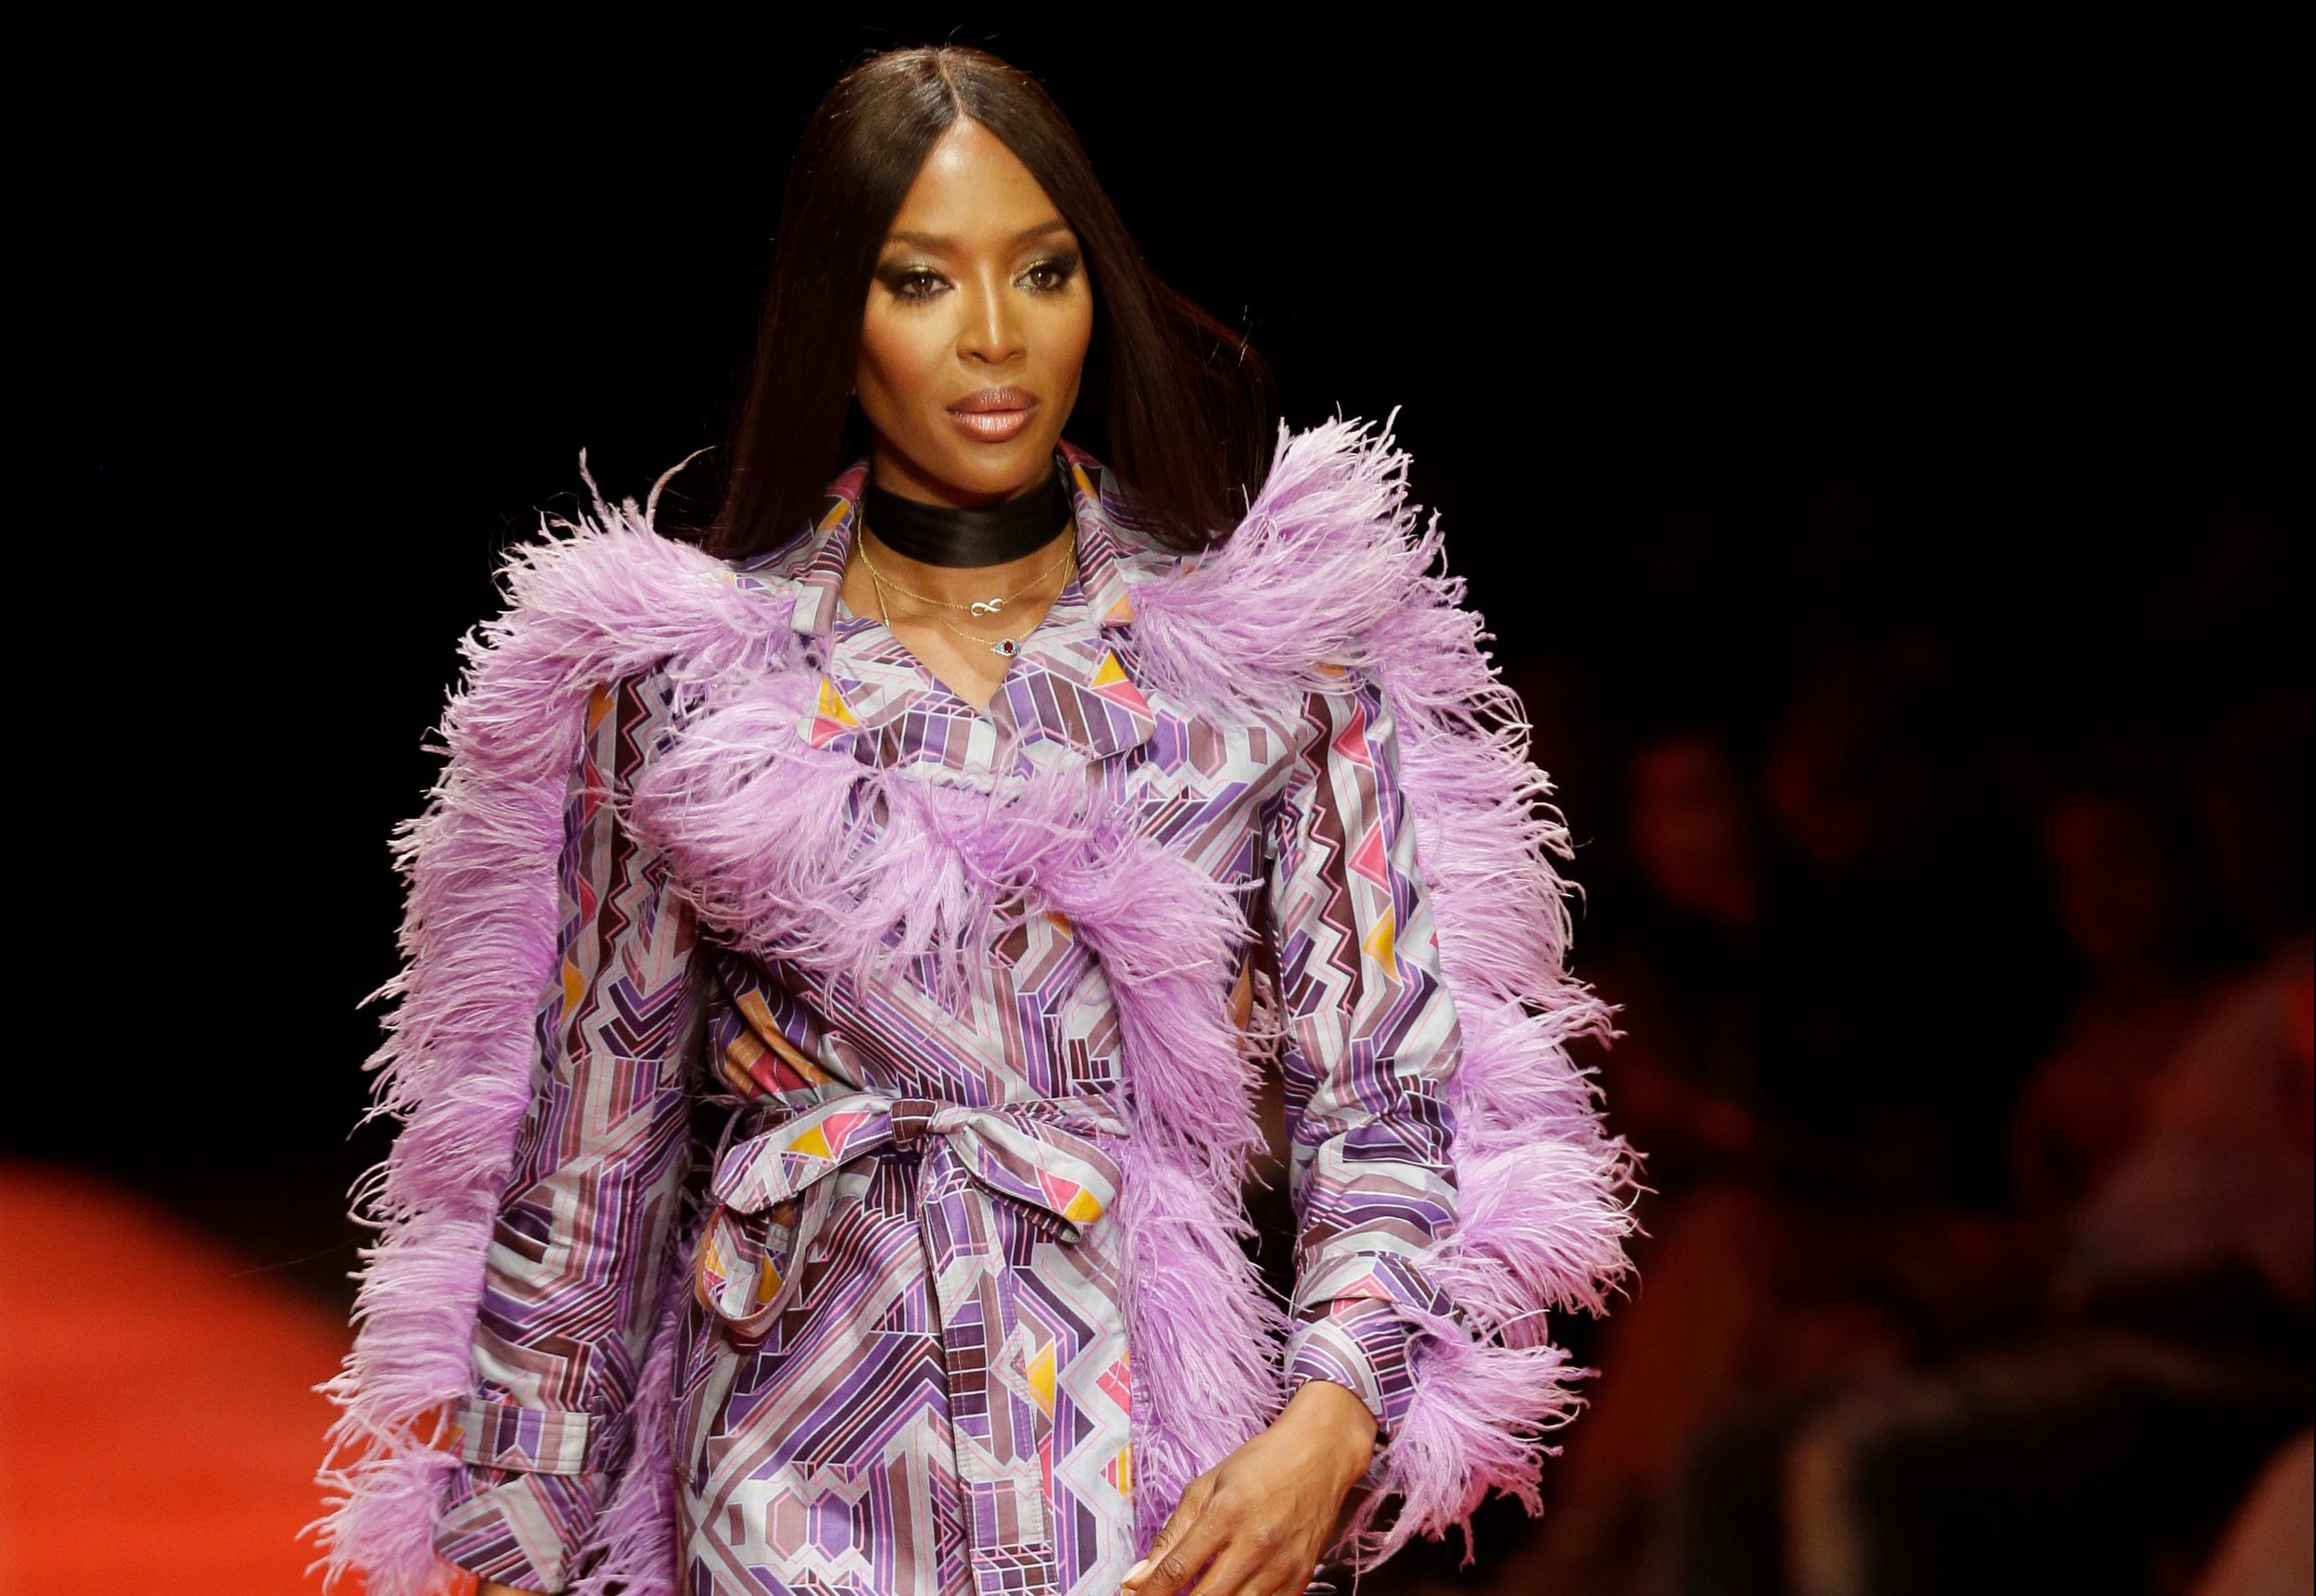 Naomi Campbell appearing at Arise Fashion Week, photo courtesy of WWD